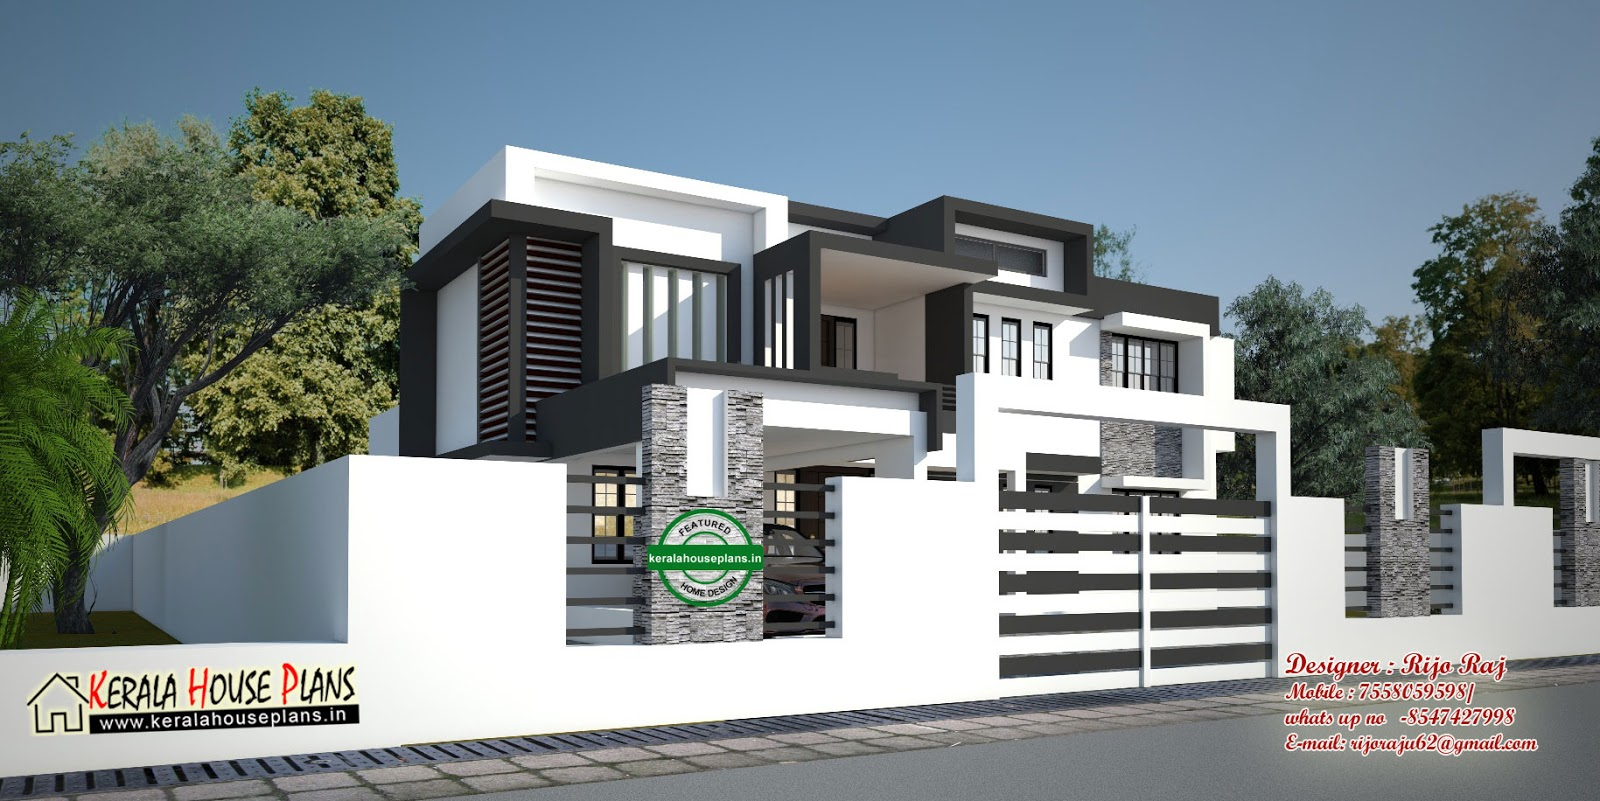 Kerala house plans designs floor plans and elevation for House plans and designs